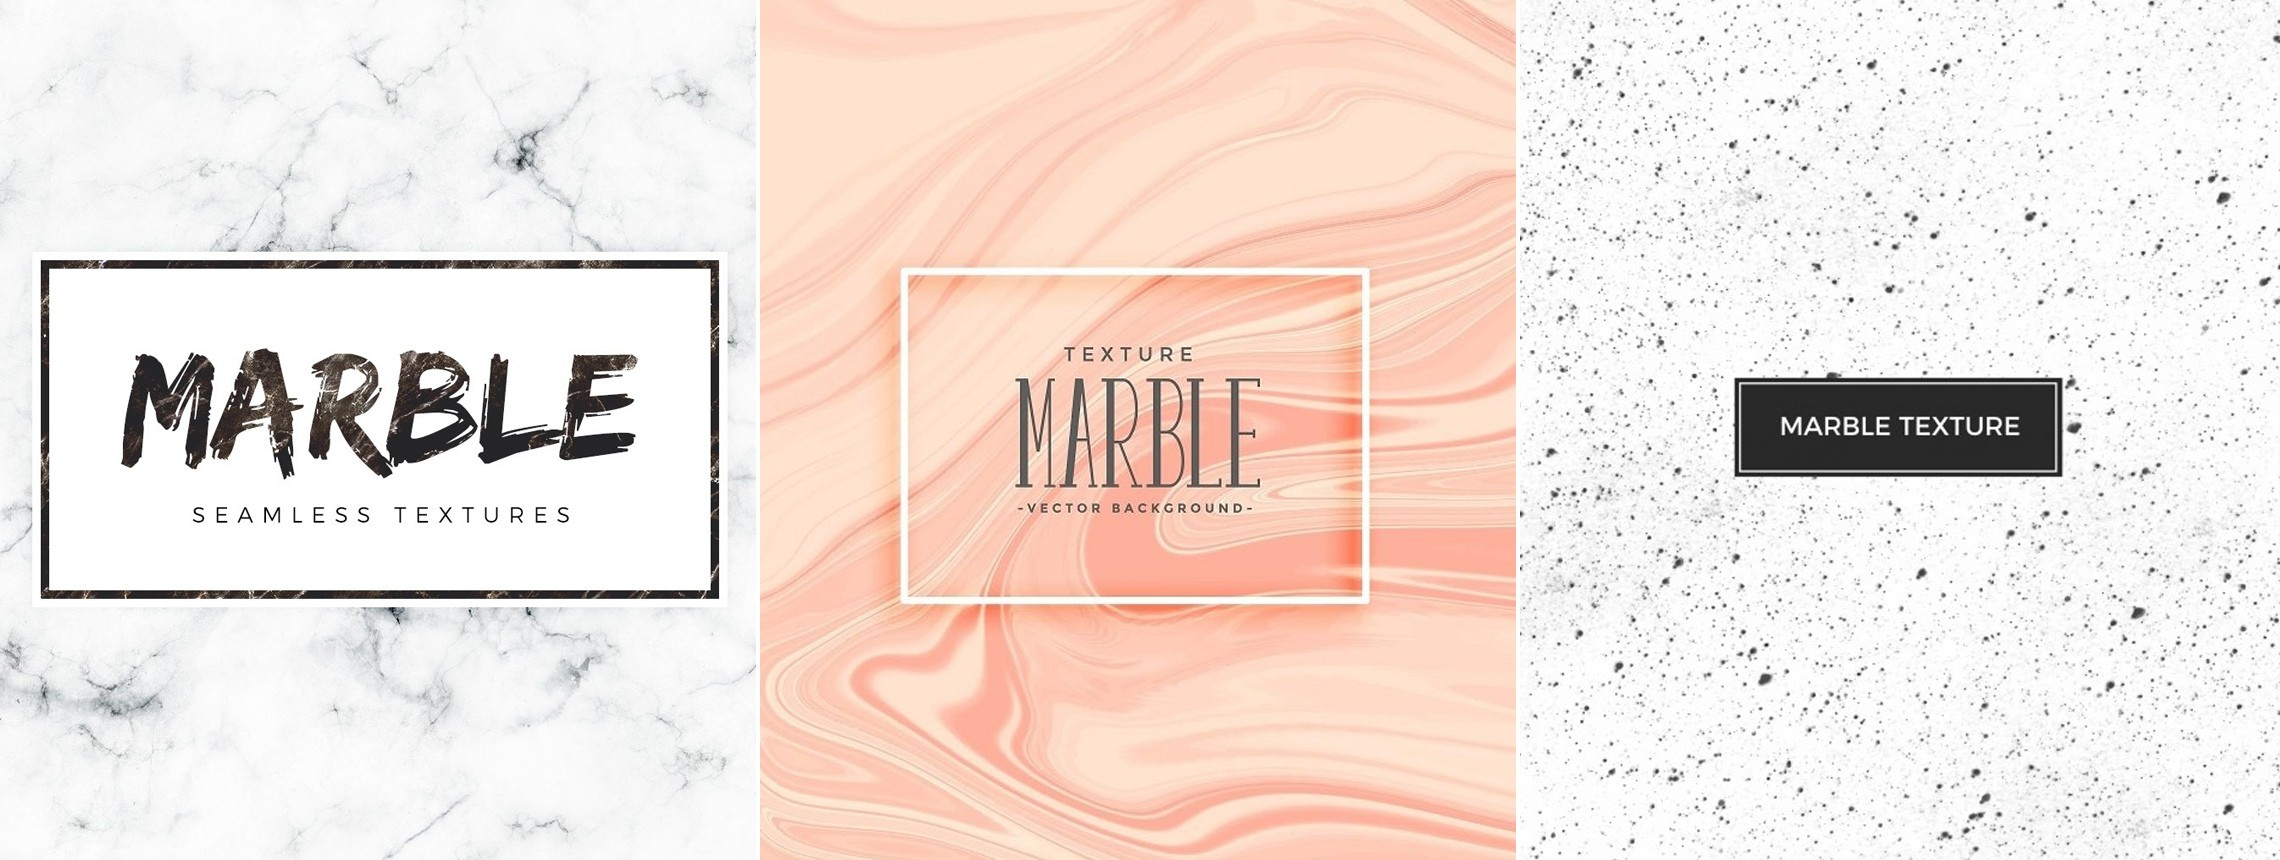 16 Exquisite, Luxurious Marble Textures